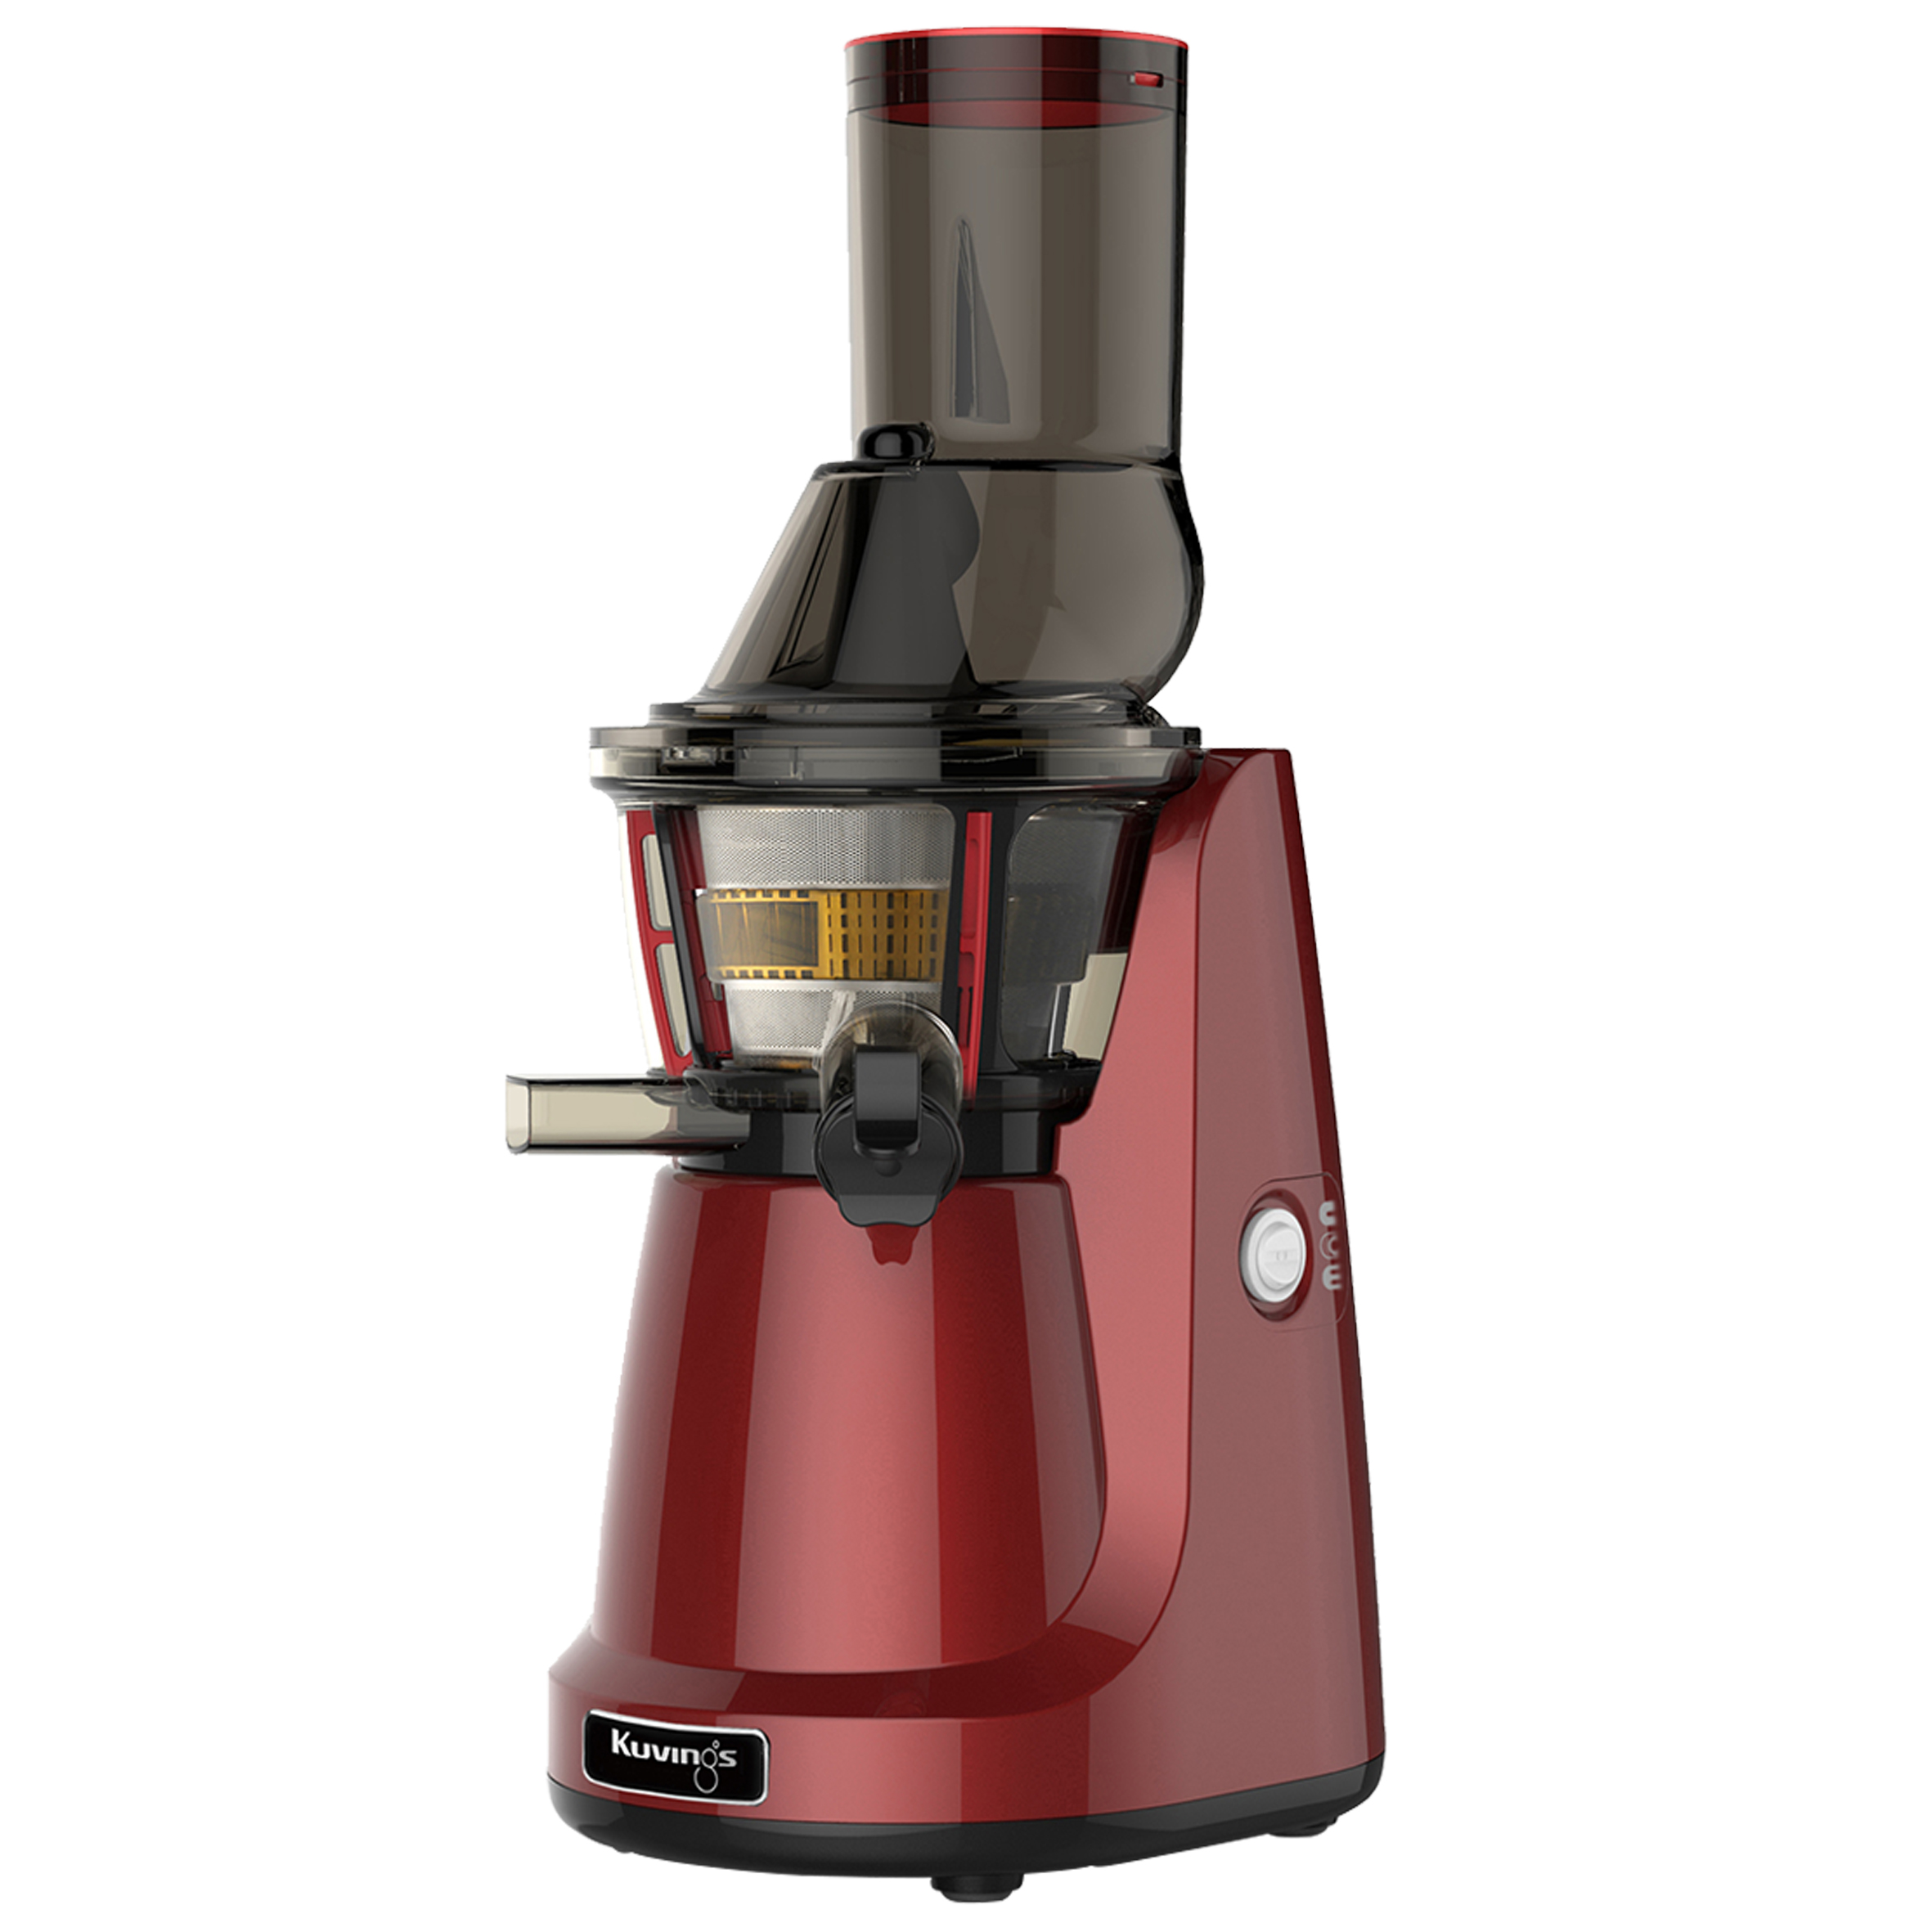 Kuvings Slow Juicer Hk : Kuvings Whole Slow Juicer B3000 Reviews - ProductReview.com.au